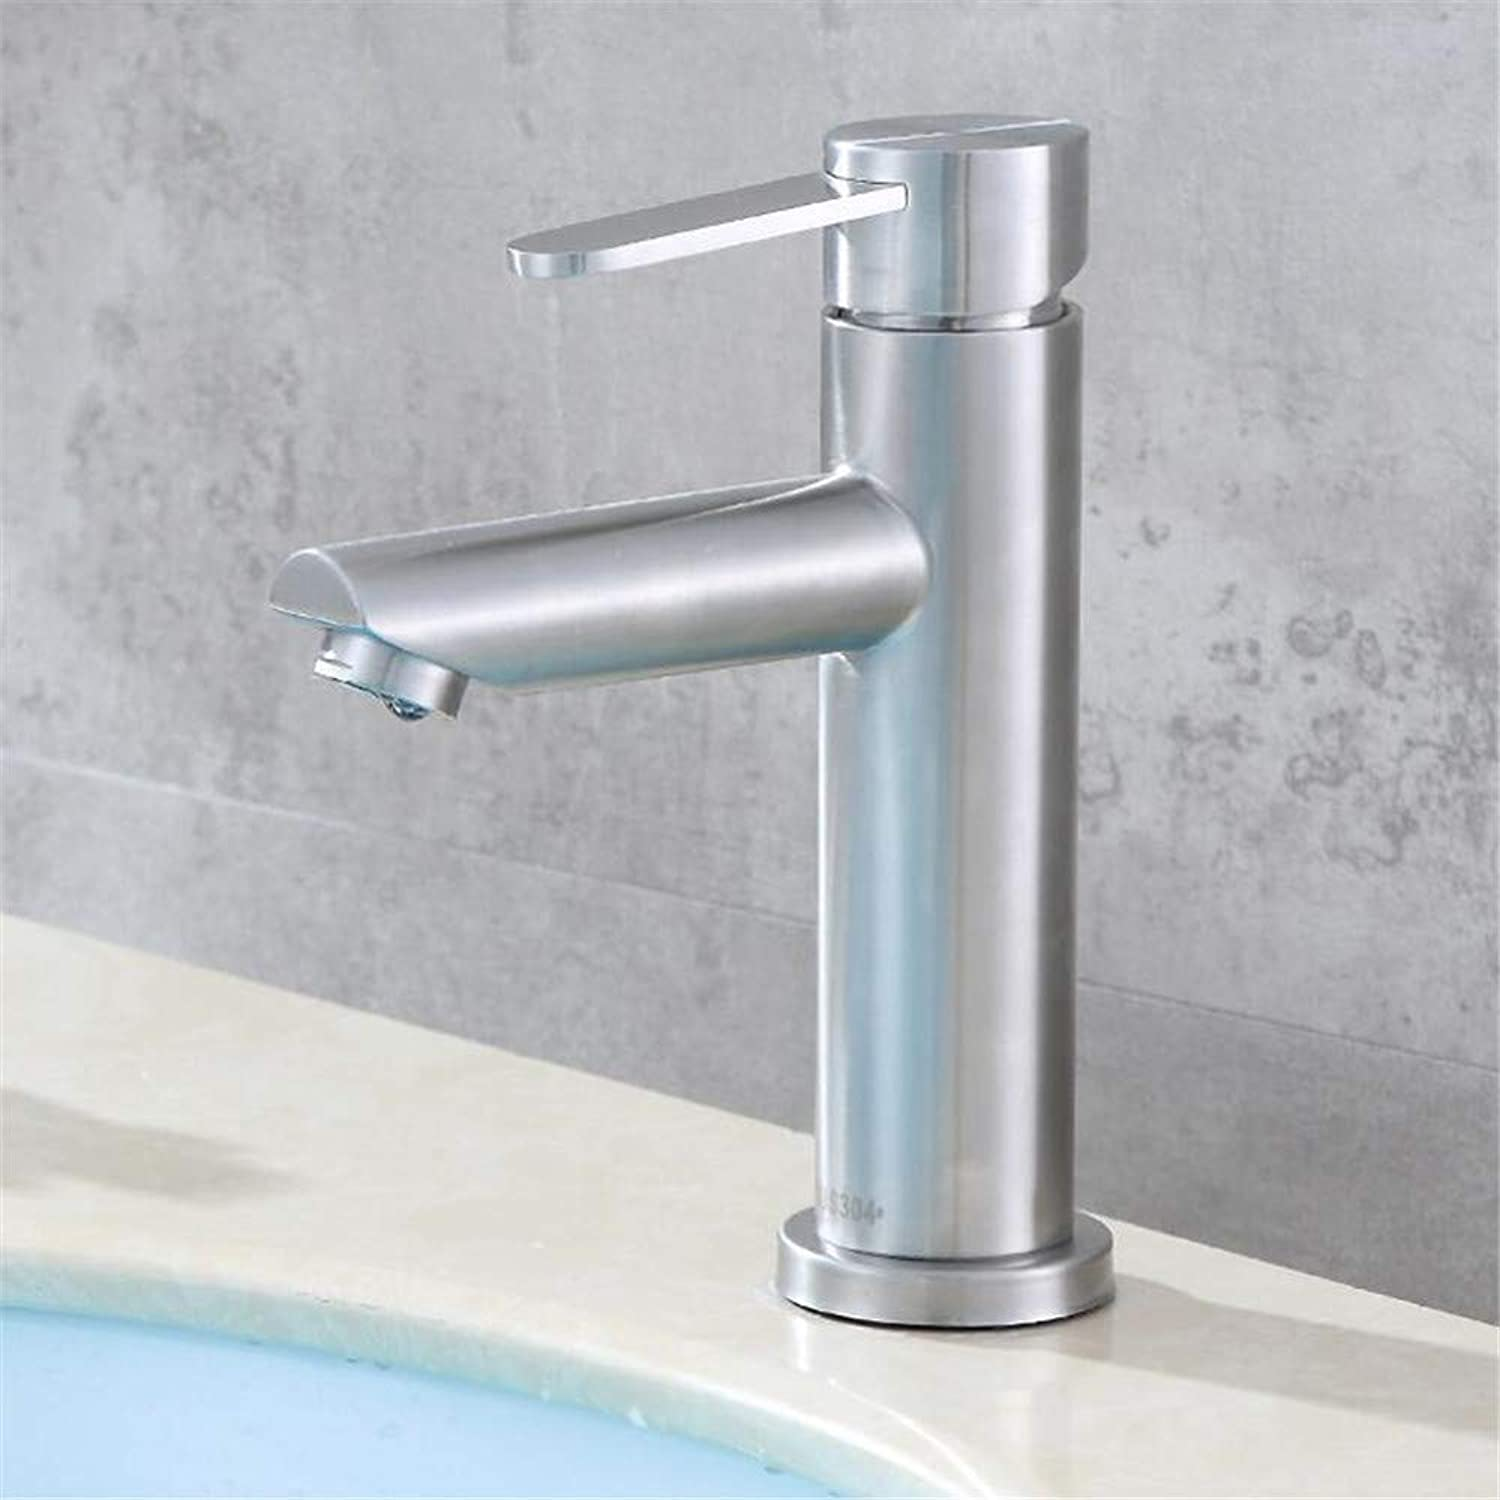 304 Stainless Steel Single Hole hot and Cold Basin Faucet Bathroom washbasin washbasin Mixer